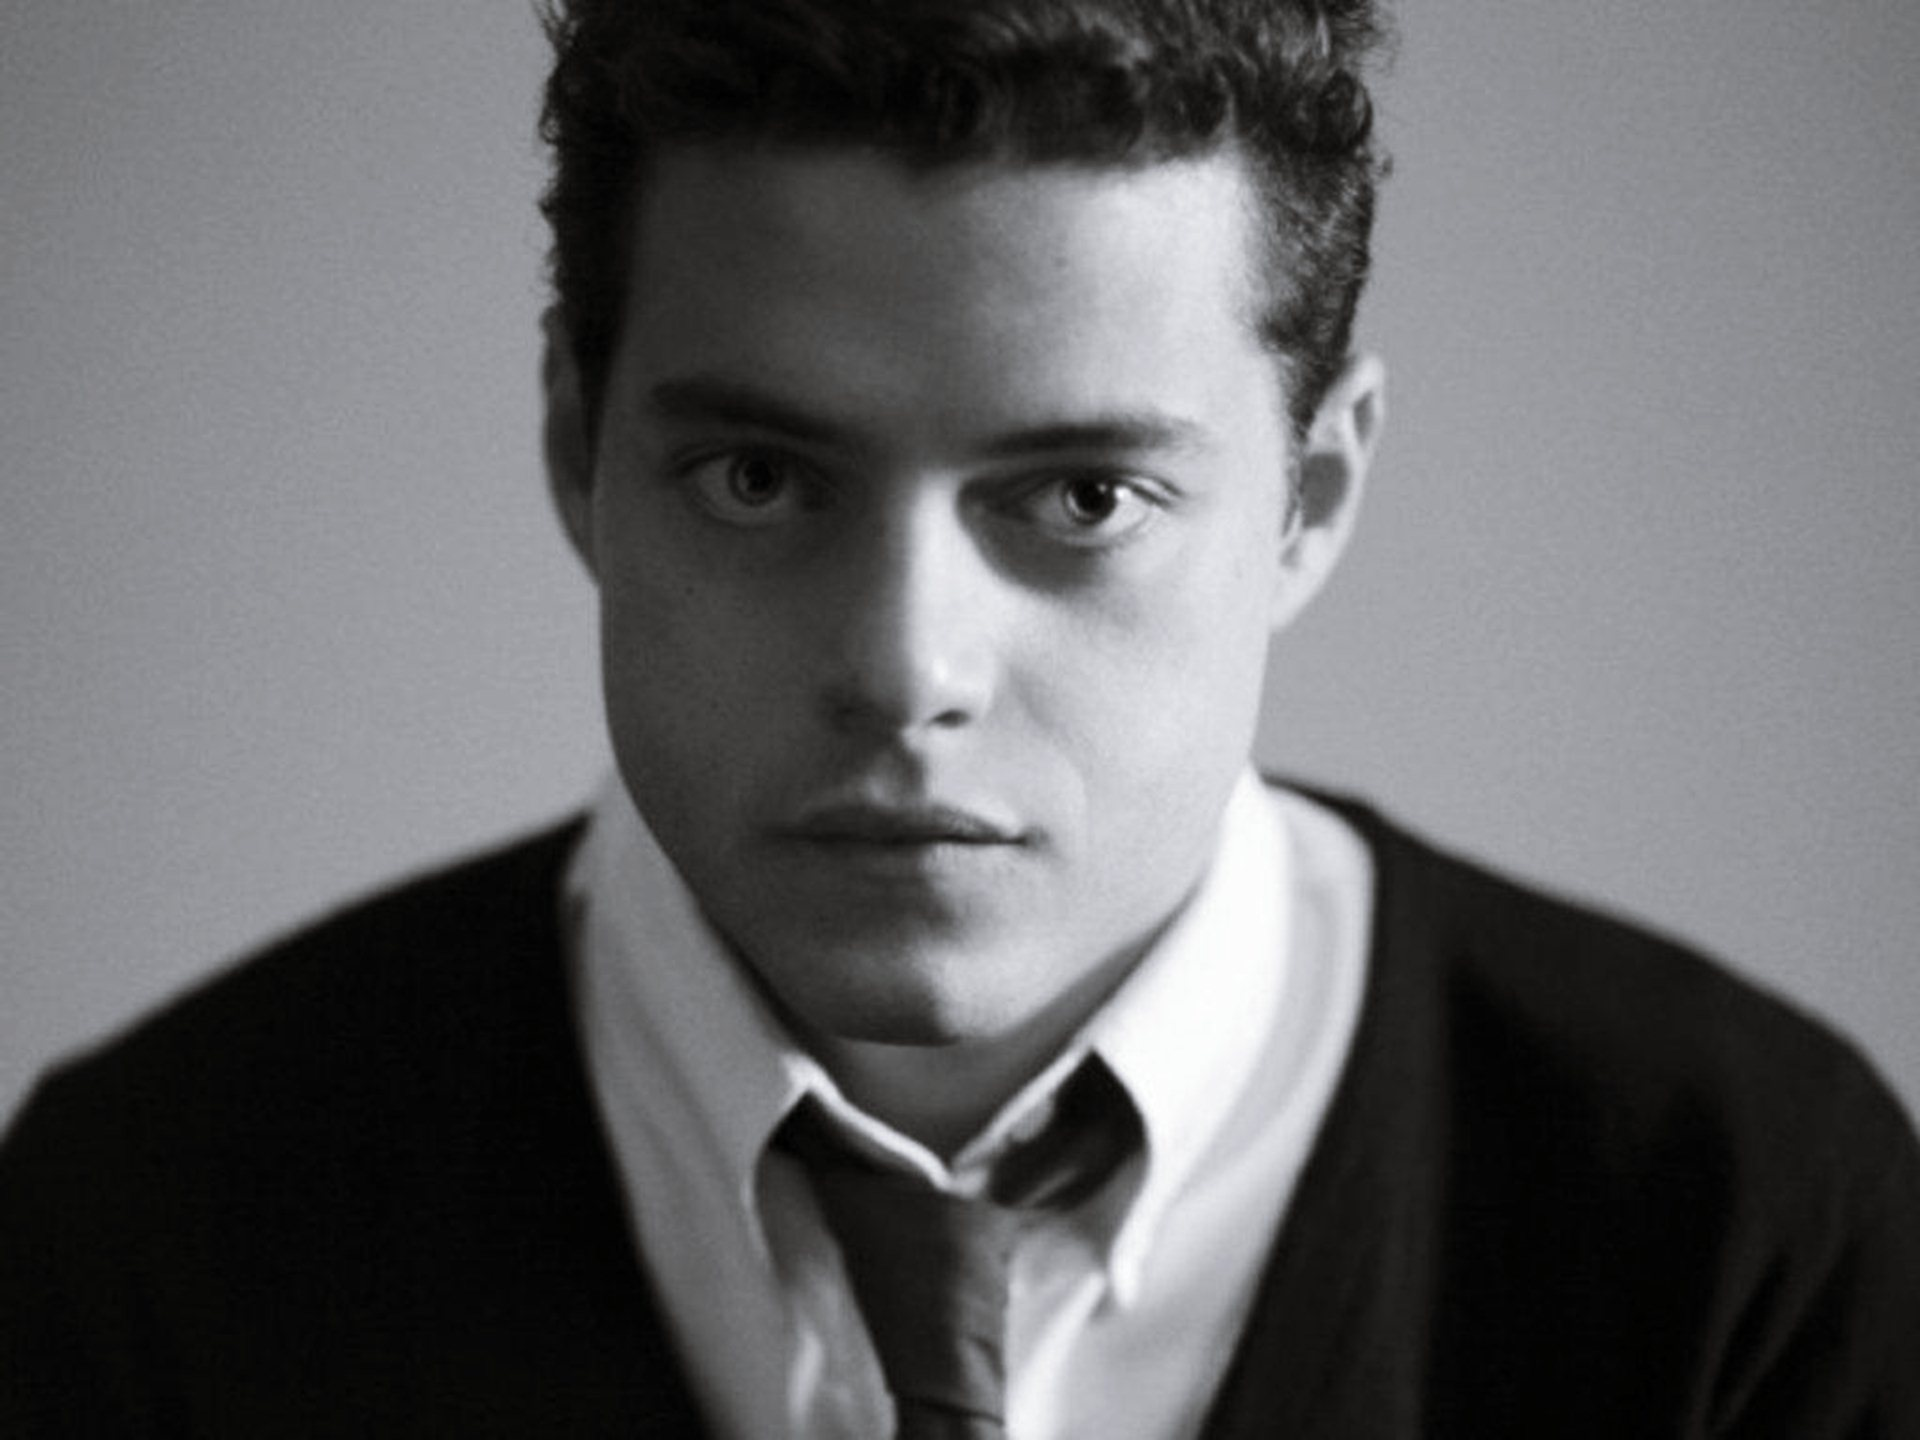 Rami Malek HD Wallpapers of High Quality Download Scarlett Johansson Wallpaper